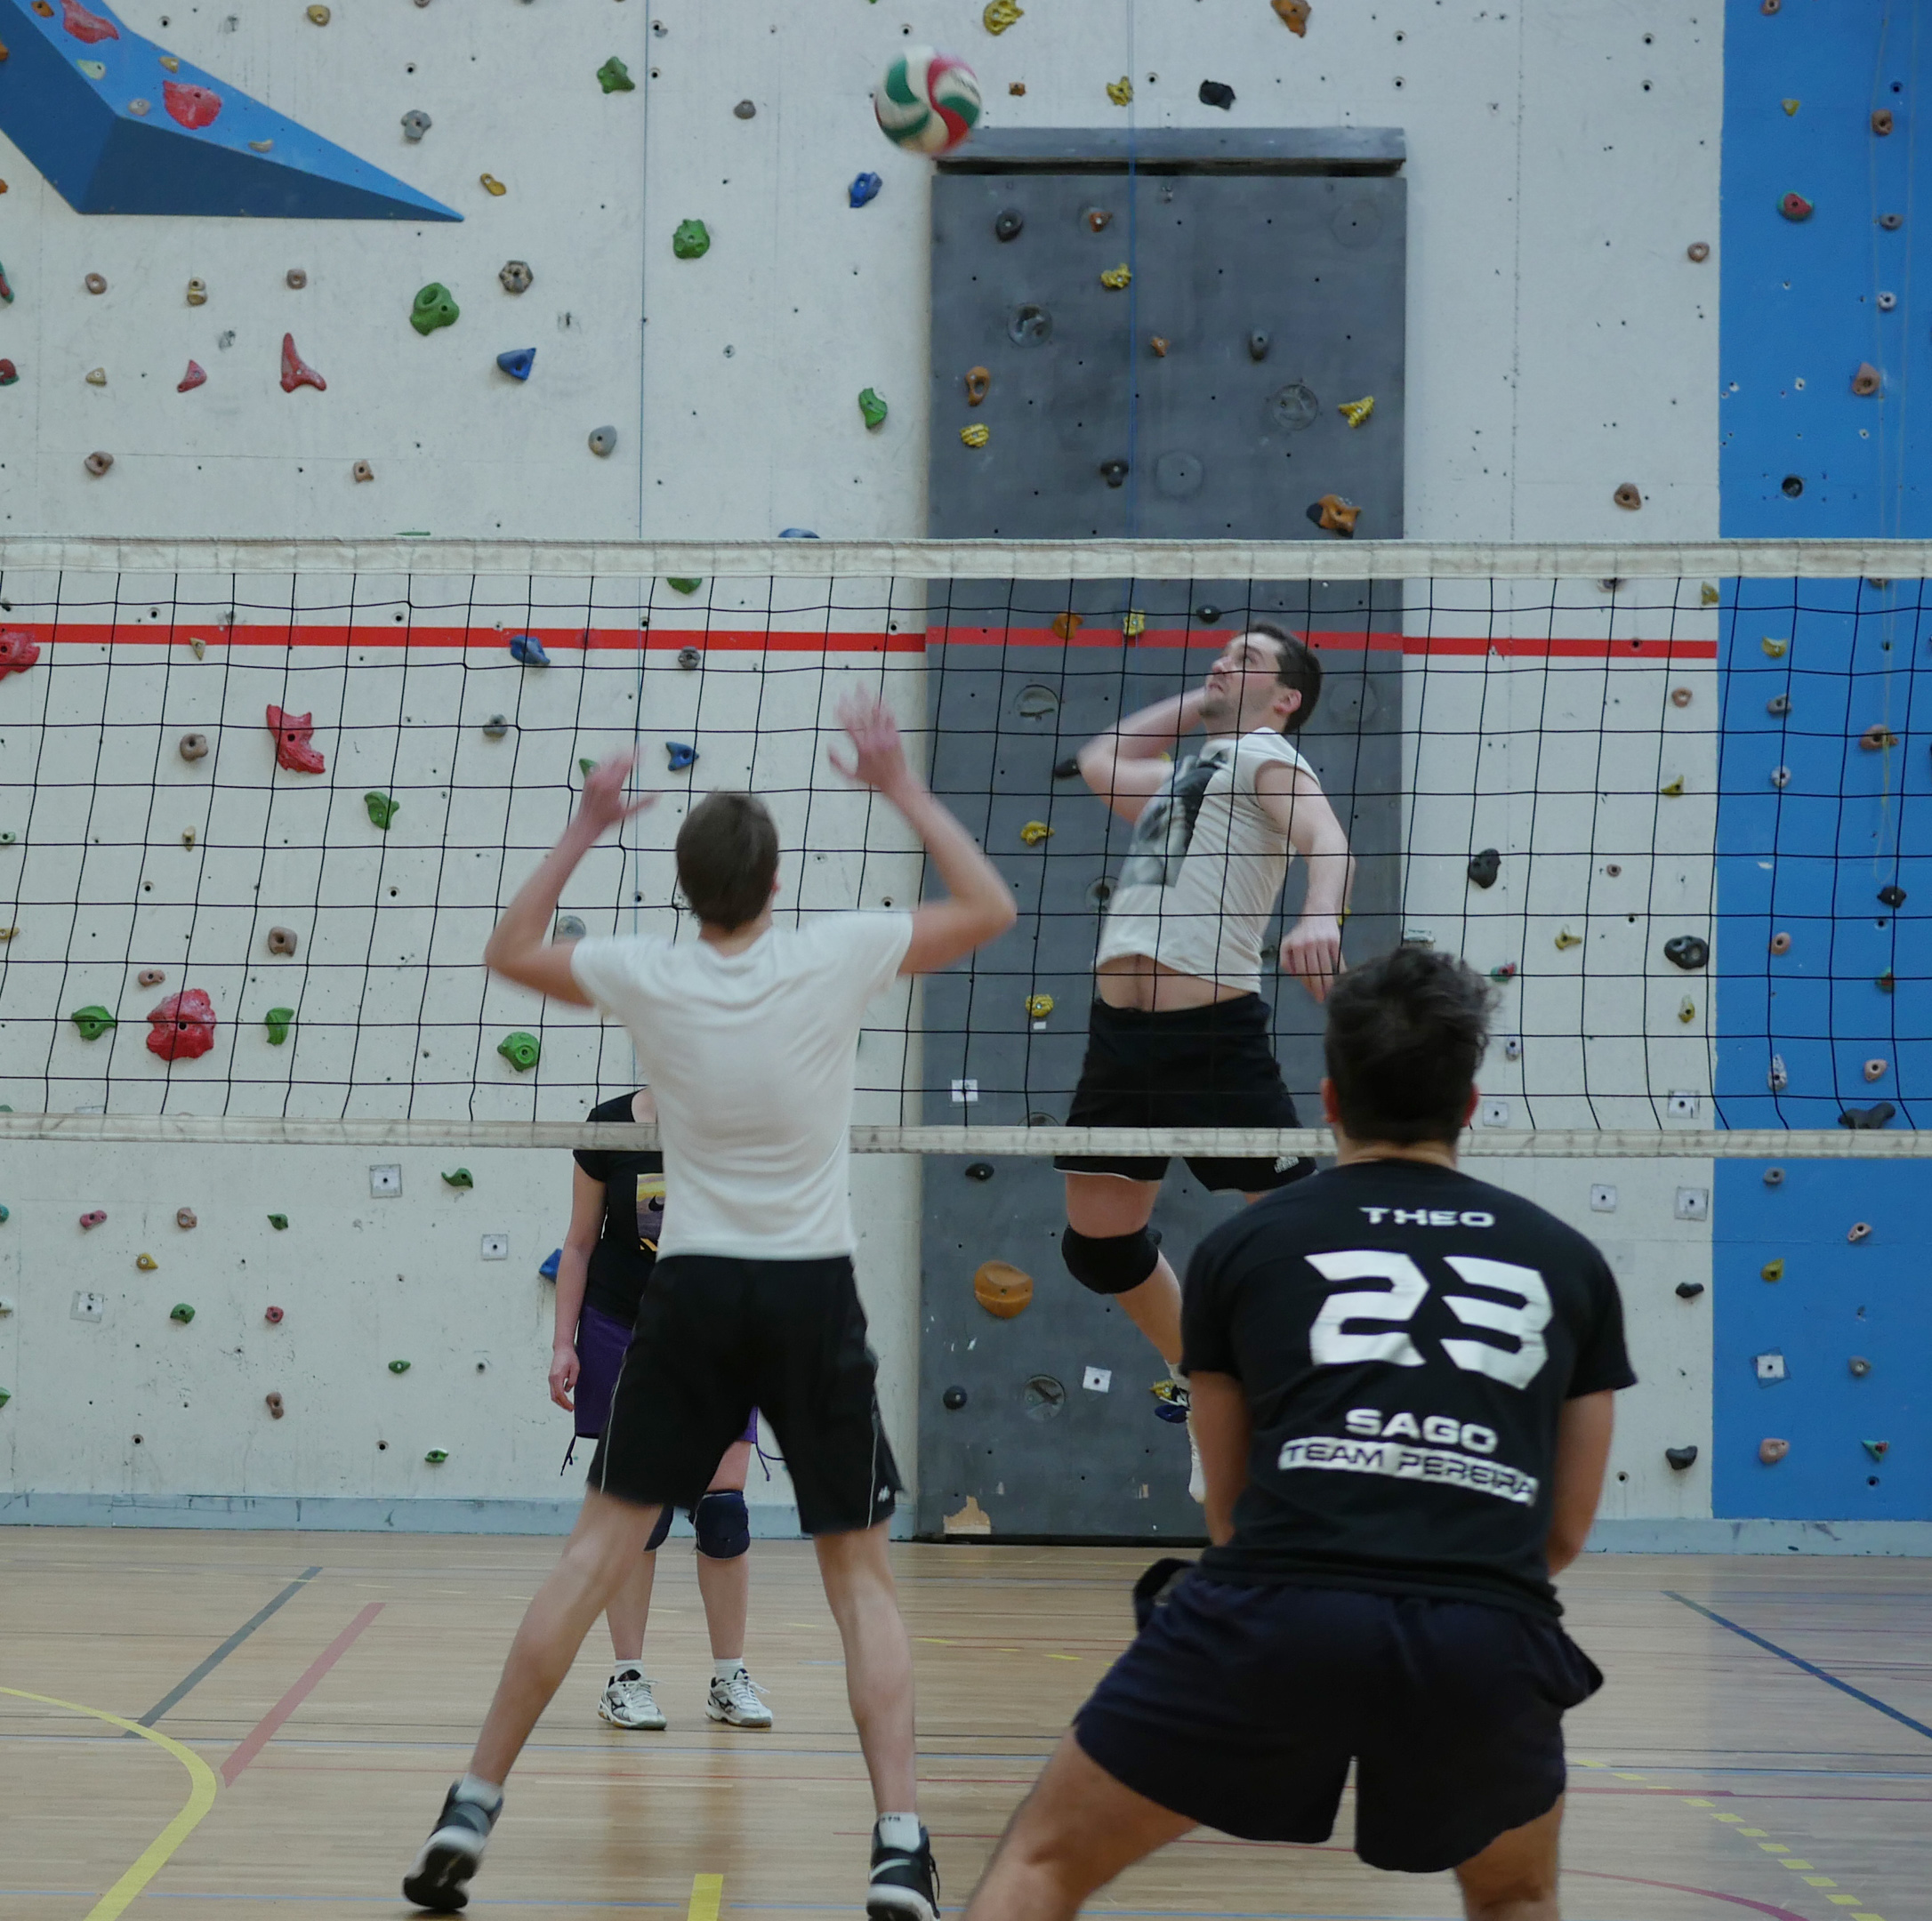 Tournoi Volley USMA 2015-49.JPG